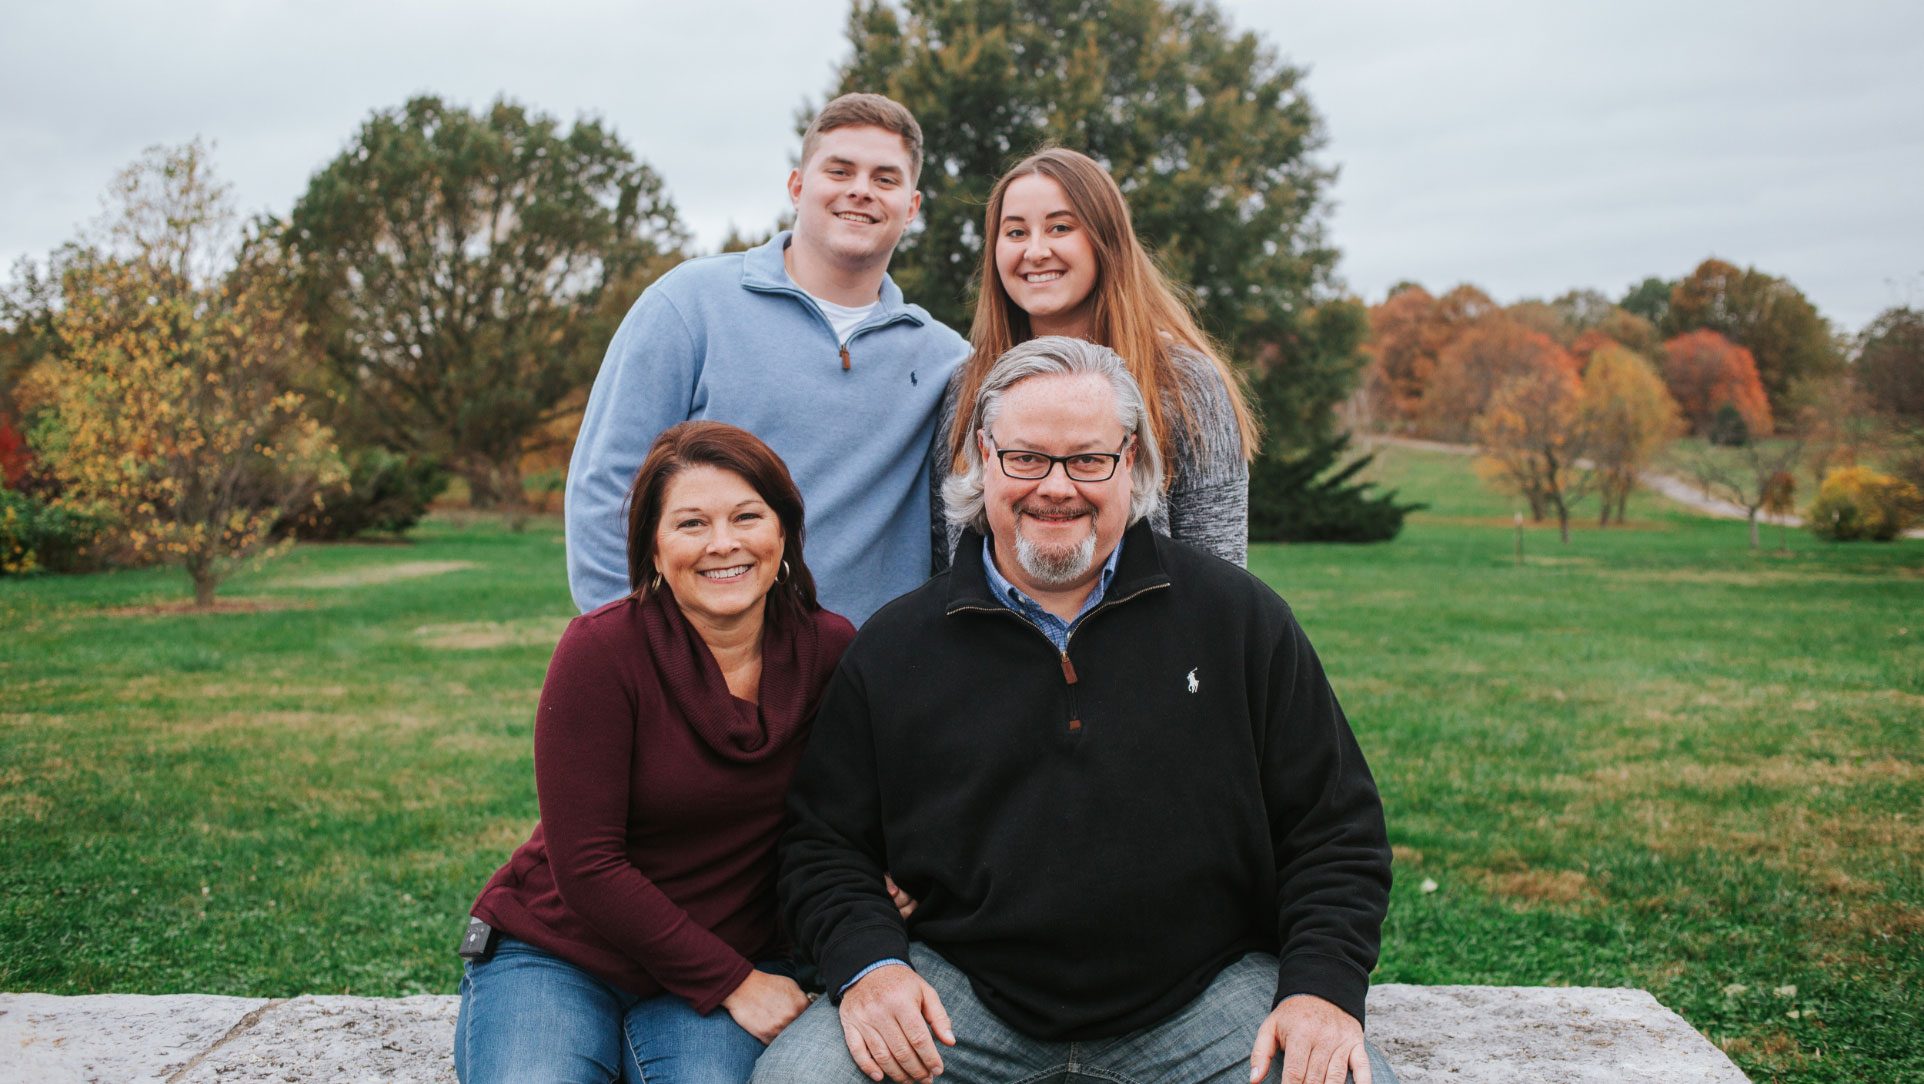 Jill, her husband, her son and her daughter pose for a group shot in an outdoor setting.